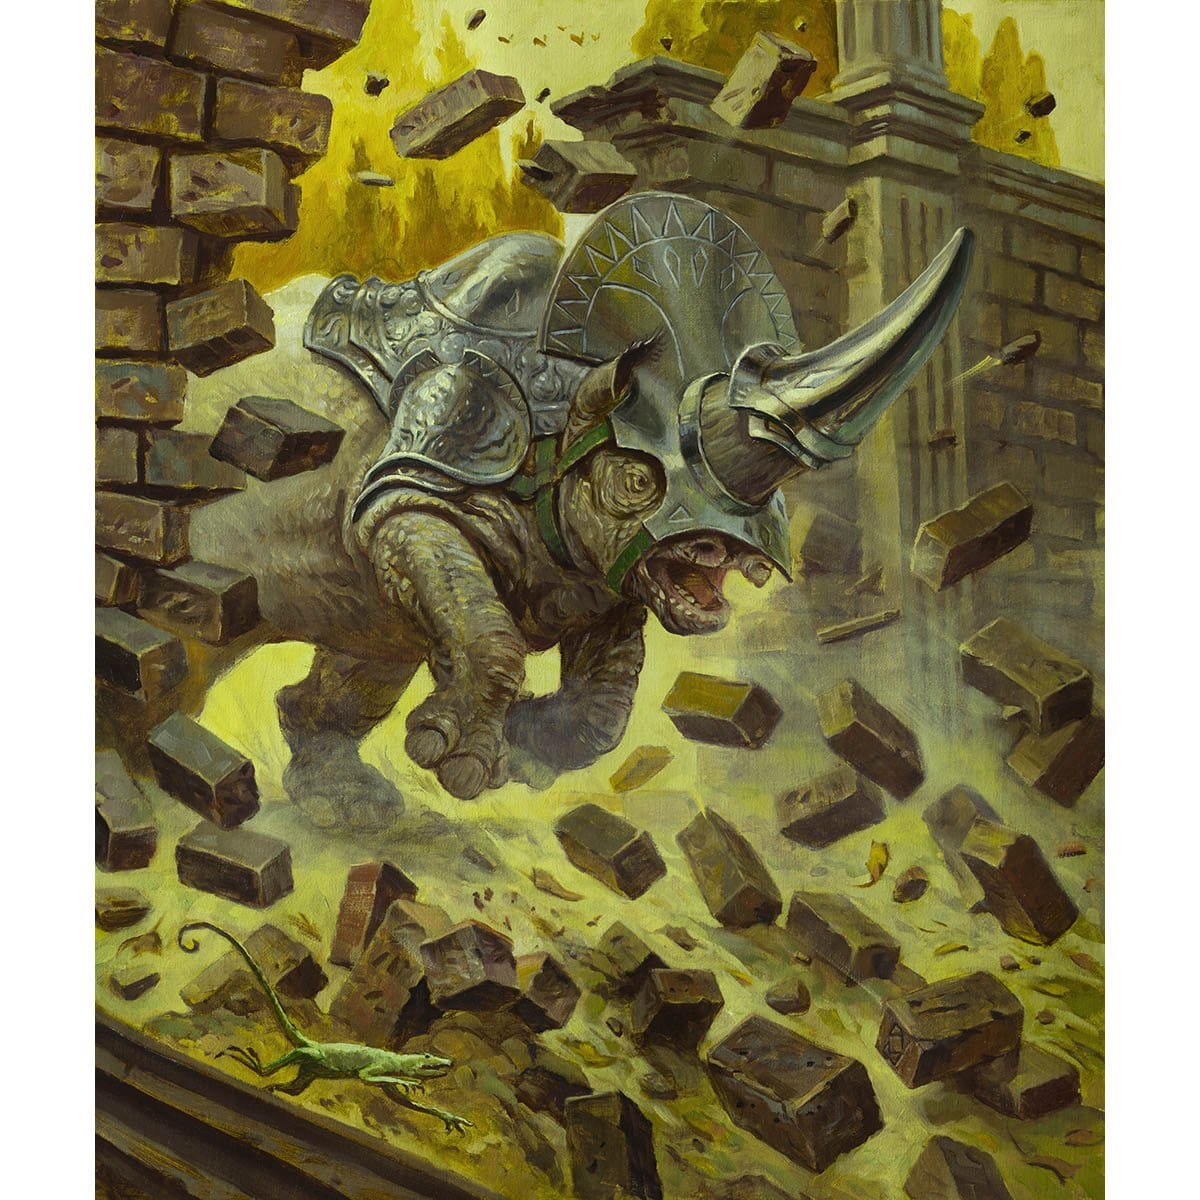 Rhino Token Print - Print - Original Magic Art - Accessories for Magic the Gathering and other card games